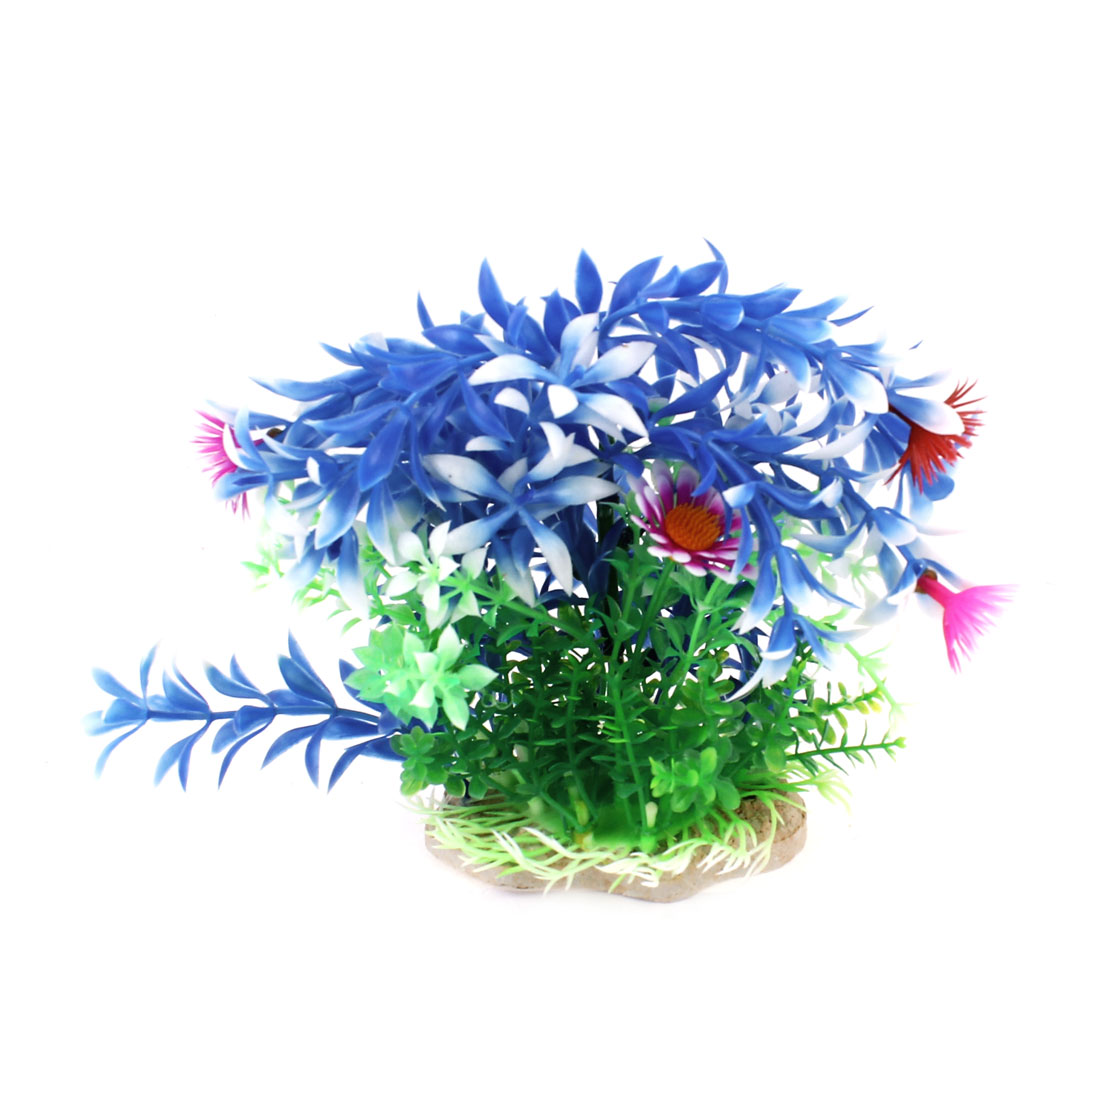 14cm High Artificial Landscaping Plastic Aquarium Plant Decor Blue White Green